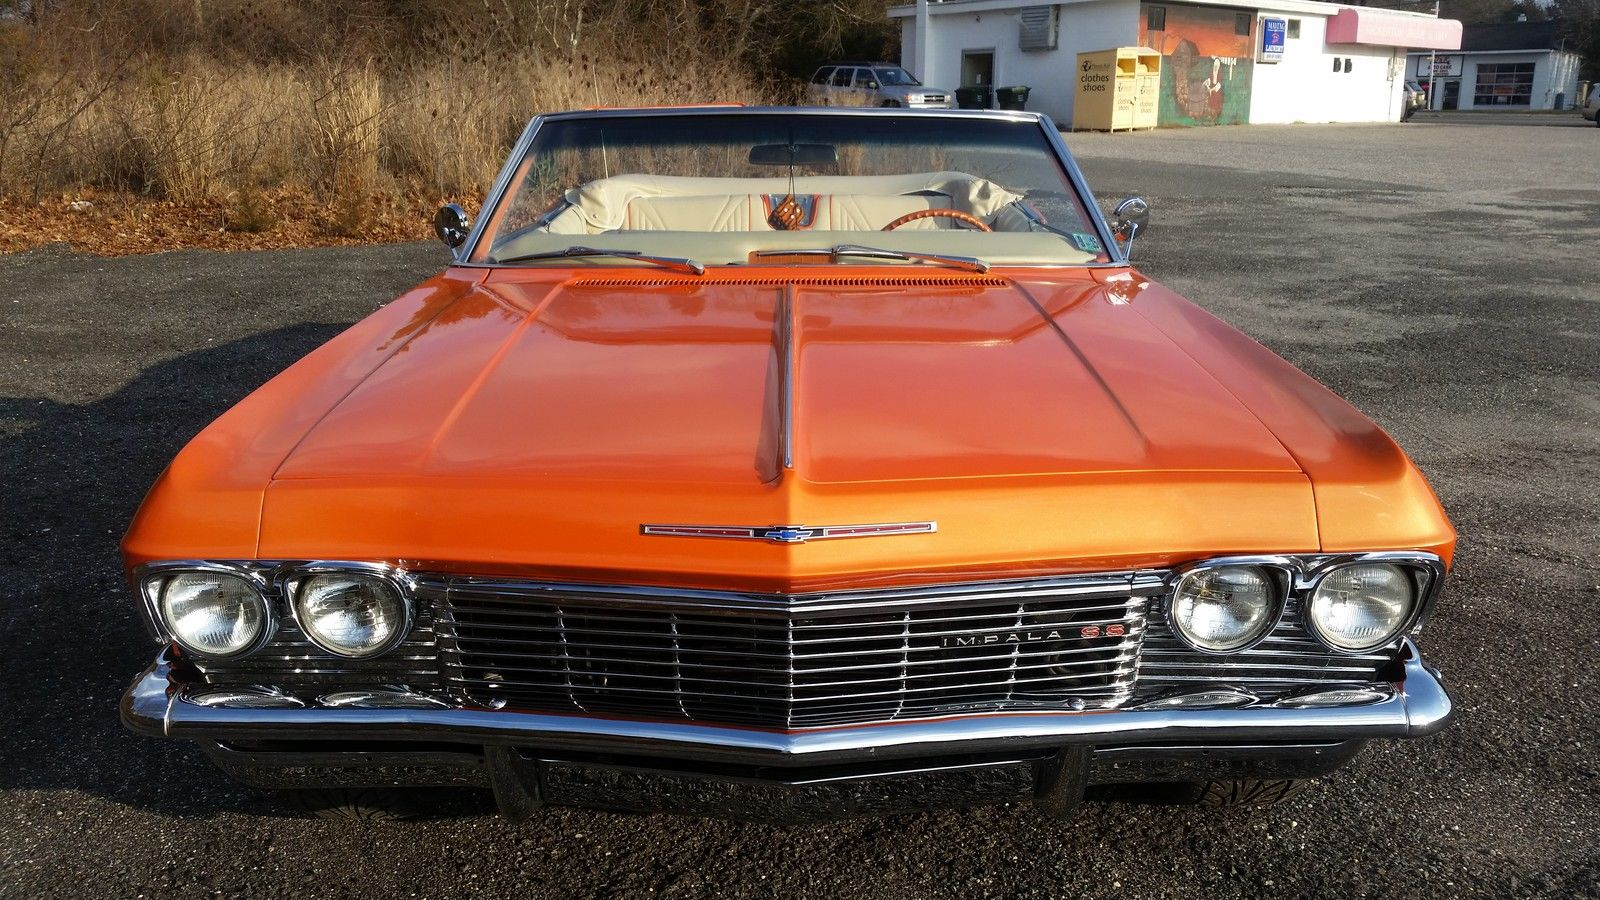 1965 chevy impala ss convertible air bags 22 39 s restored super sport 350 350 for sale in west. Black Bedroom Furniture Sets. Home Design Ideas